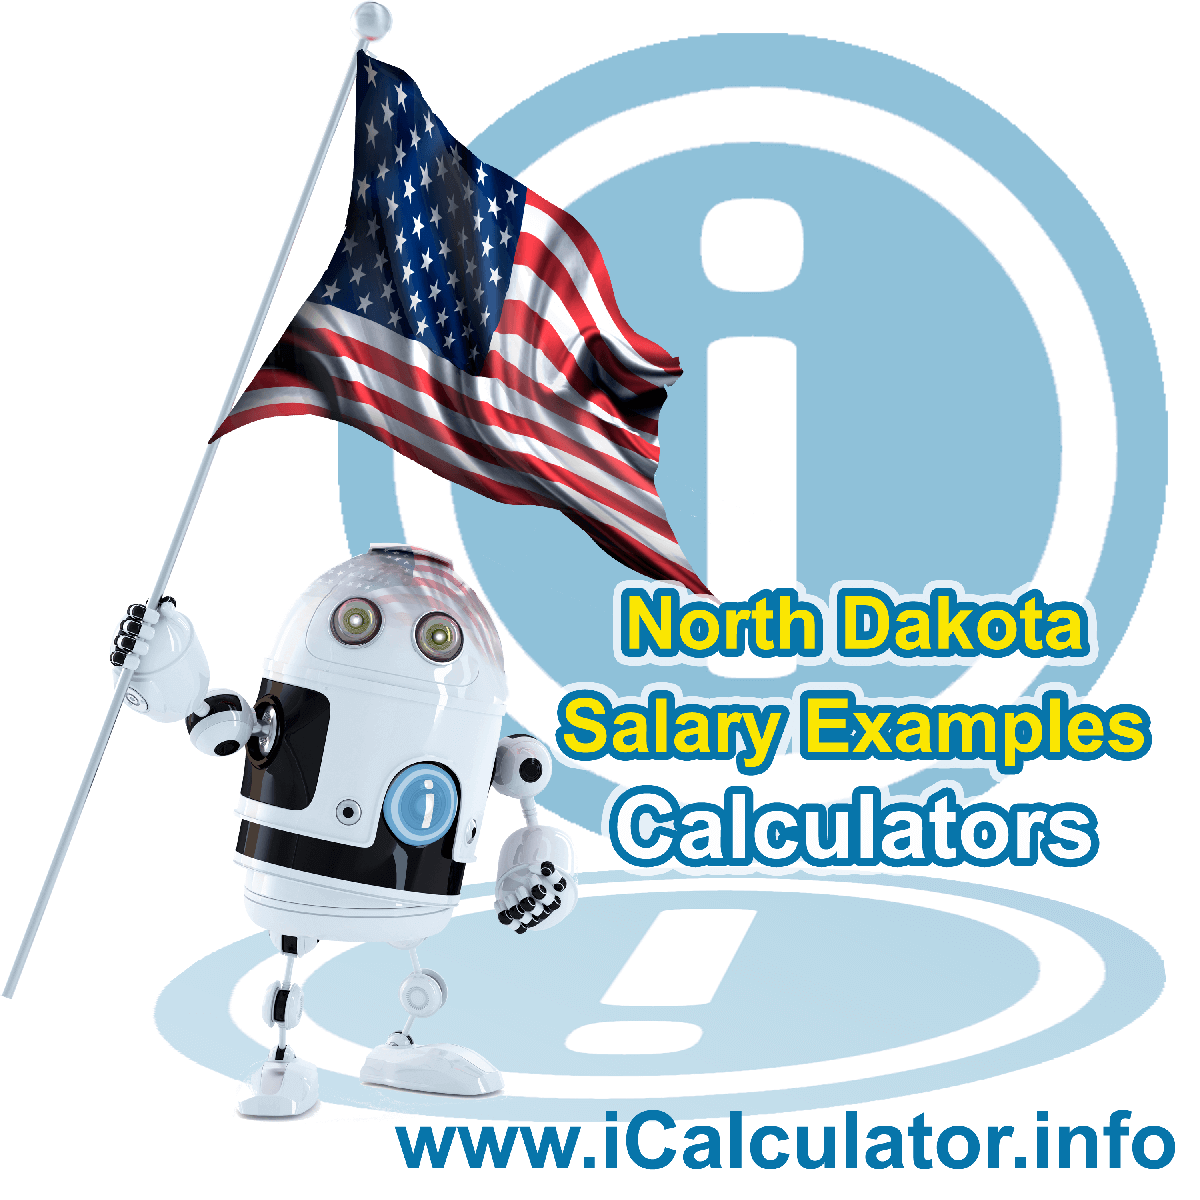 North Dakota Salary Example for $25,000.00 in 2020 | iCalculator | $25,000.00 salary example for employee and employer paying North Dakota State tincome taxes. Detailed salary after tax calculation including North Dakota State Tax, Federal State Tax, Medicare Deductions, Social Security, Capital Gains and other income tax and salary deductions complete with supporting North Dakota state tax tables